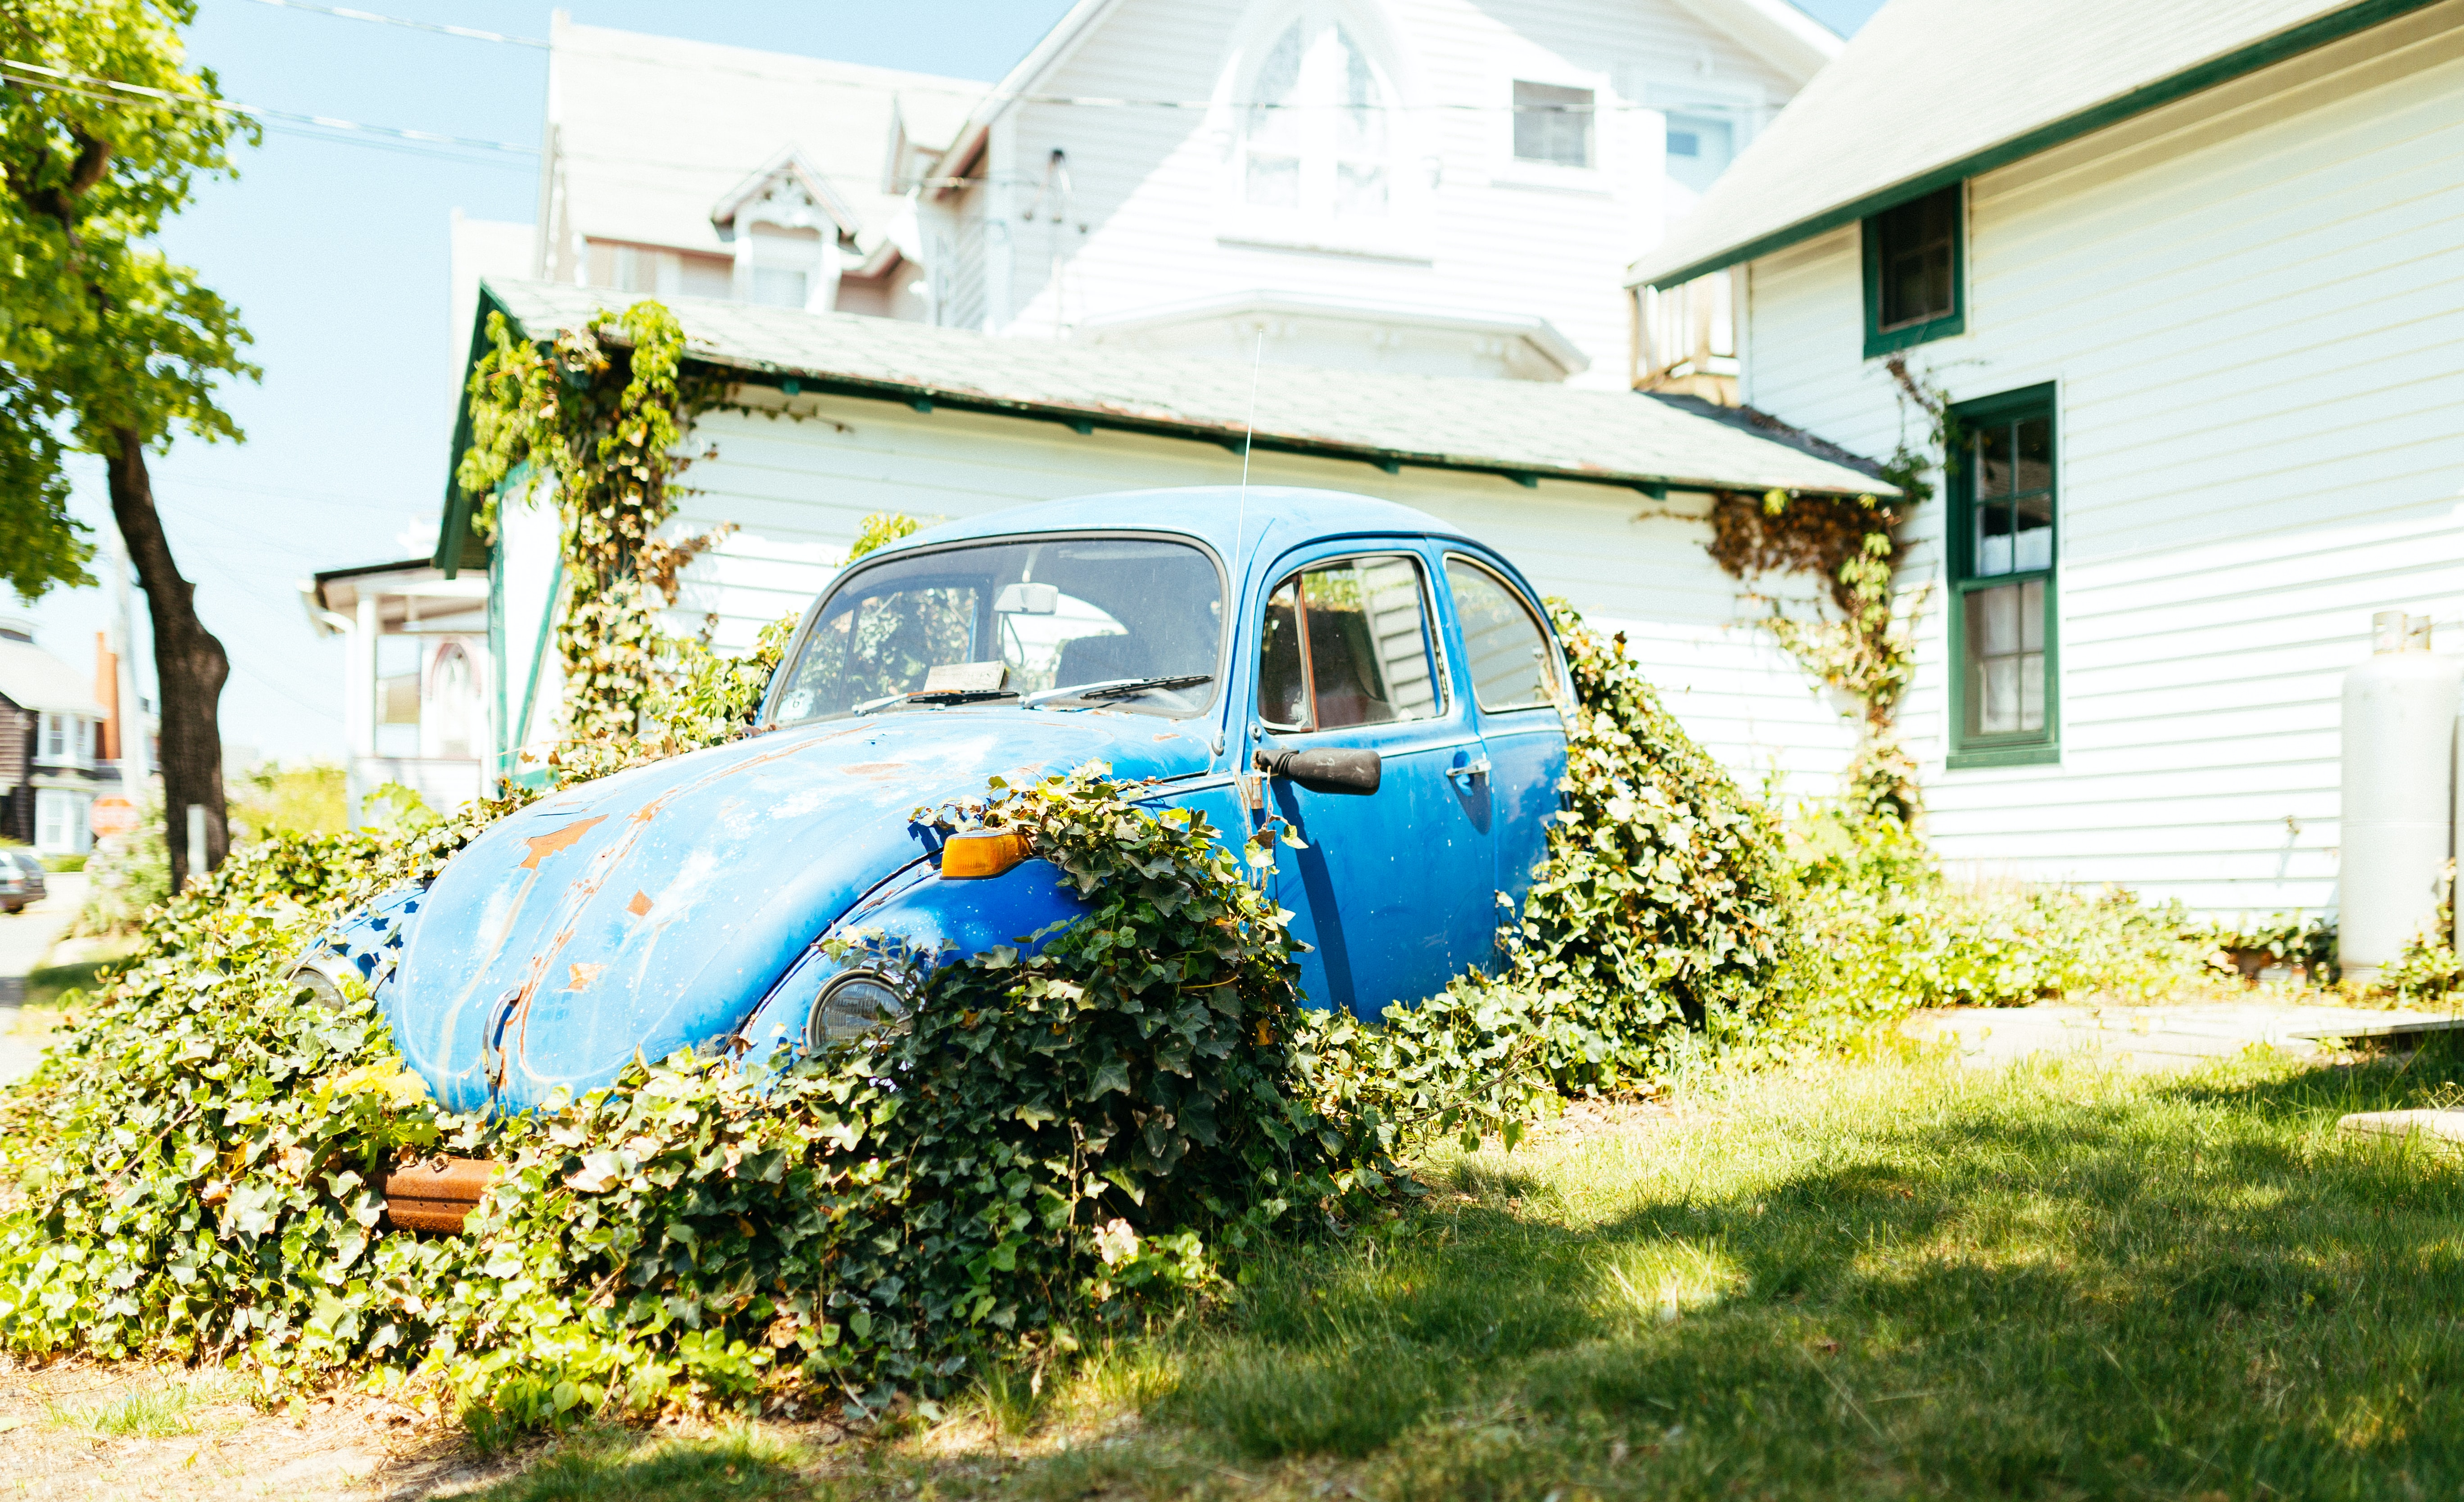 Vintage blue Volkswagen Beetle parked in front yard with vines growing on it